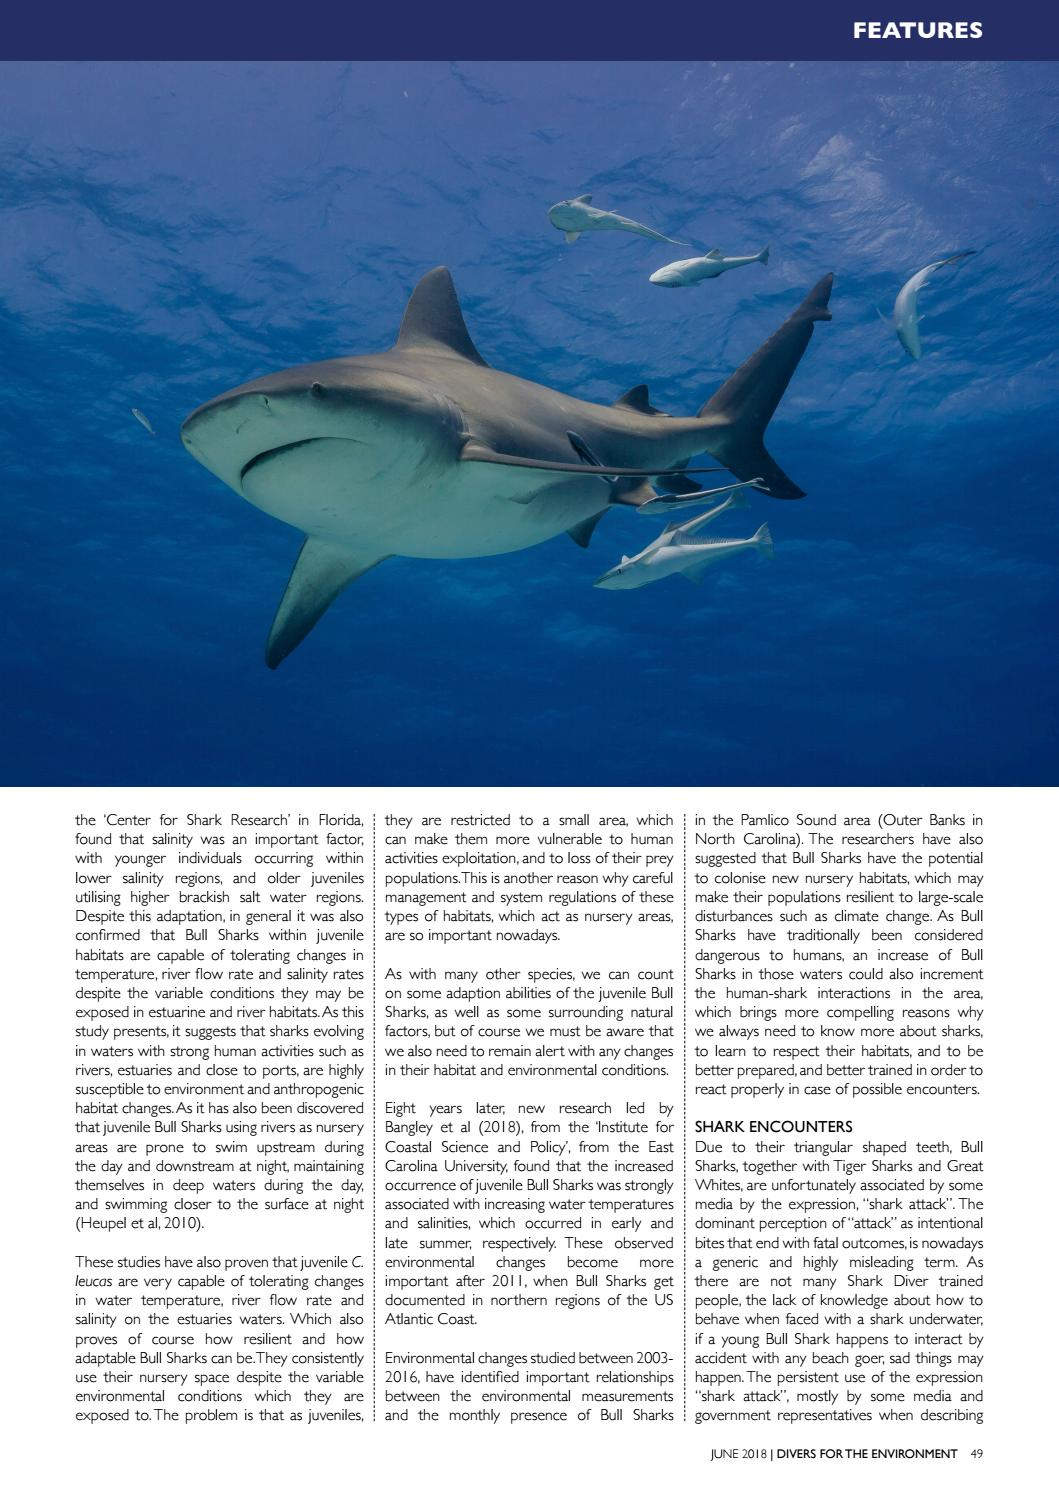 Divers For The Environment June 2018 By Divers For The Environment Issuu